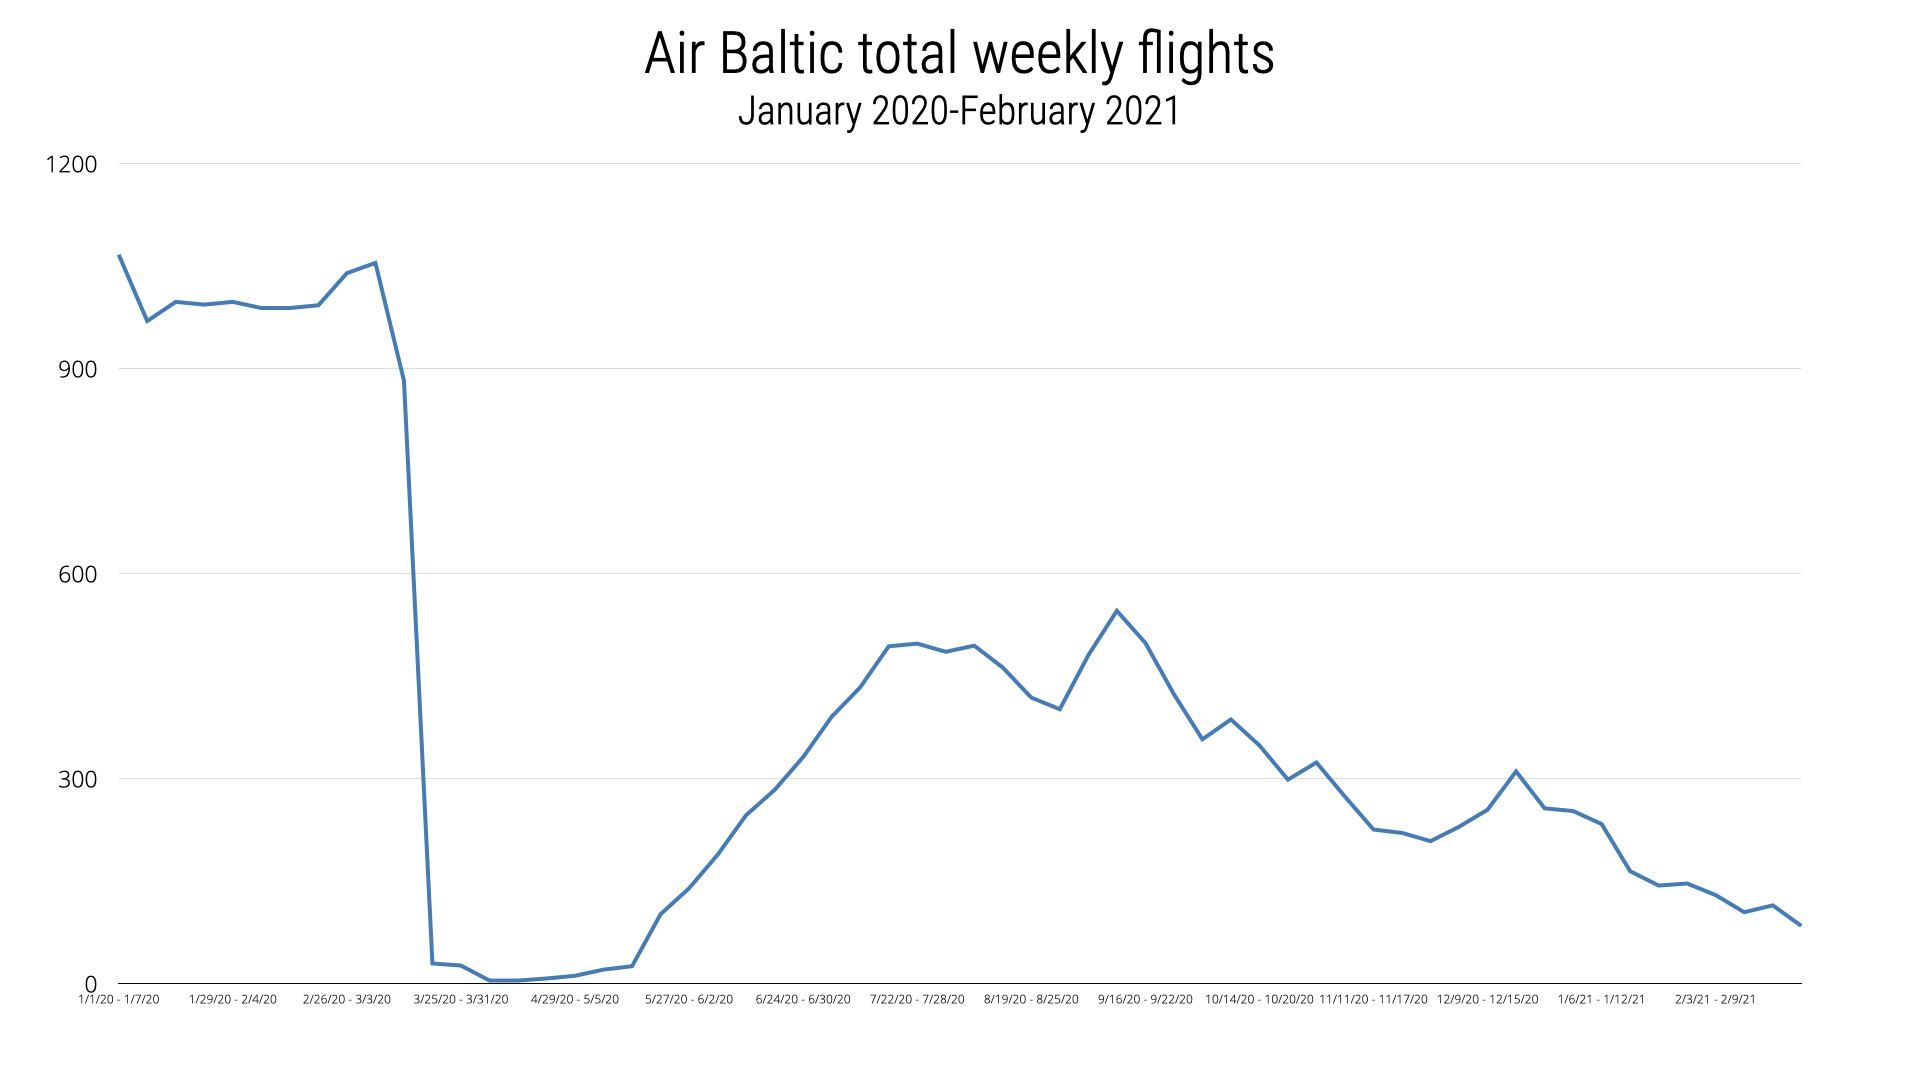 Total weekly flights by Air Baltic from January 2020 to February 2021